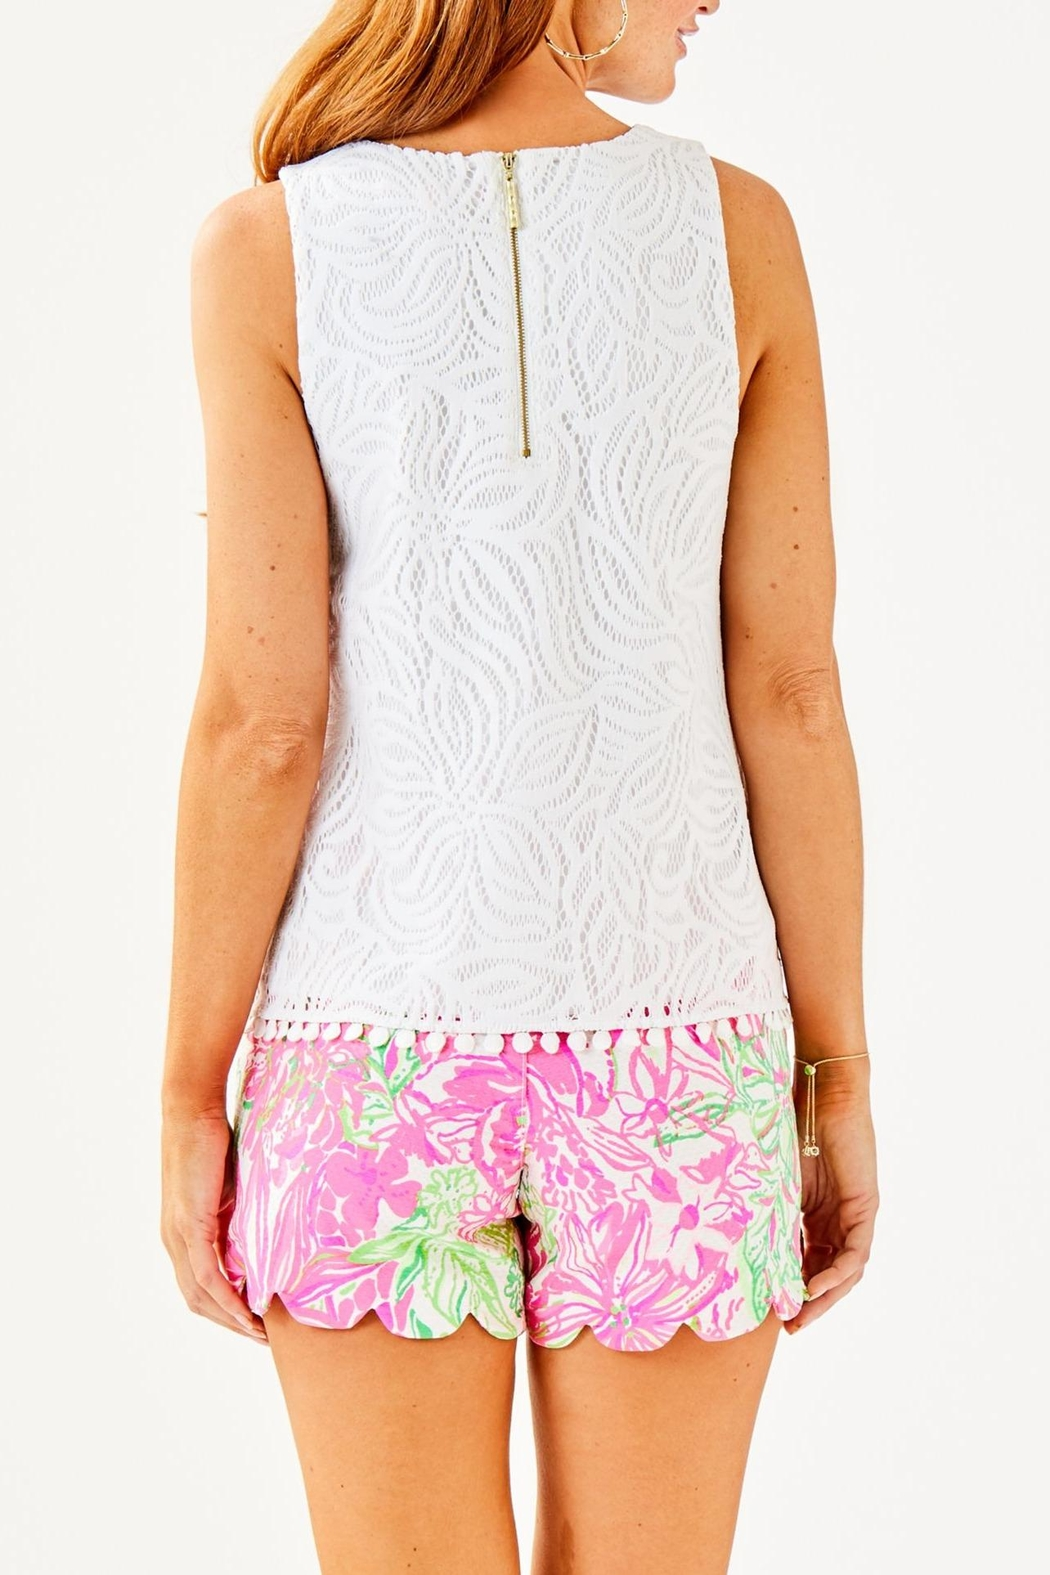 Lilly Pulitzer Maybelle Top - Front Full Image